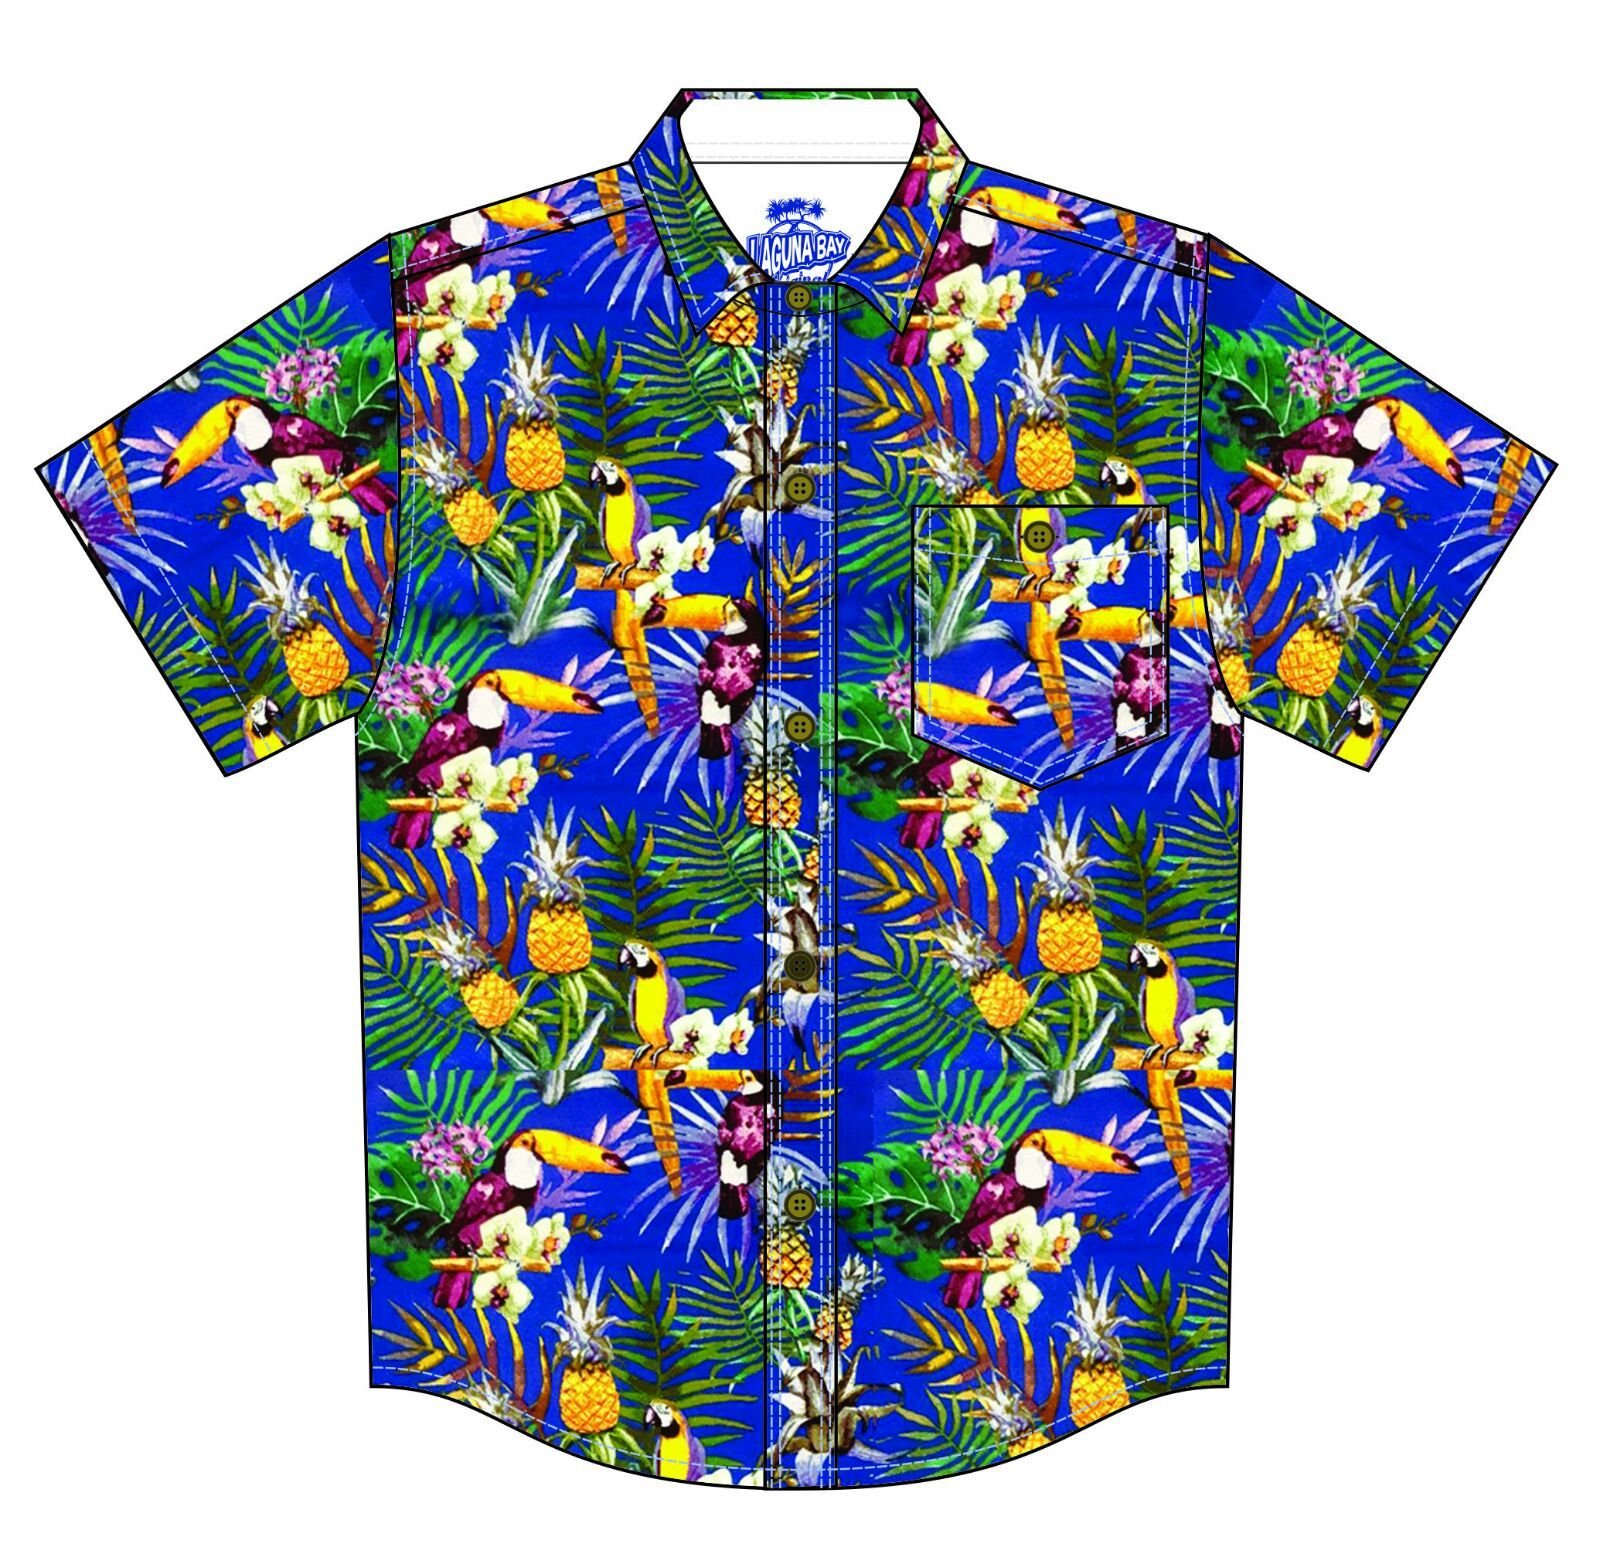 Laguna Bay Tropical Shirt - The Blue Toucan GROMS CLOTHING Laguna Bay